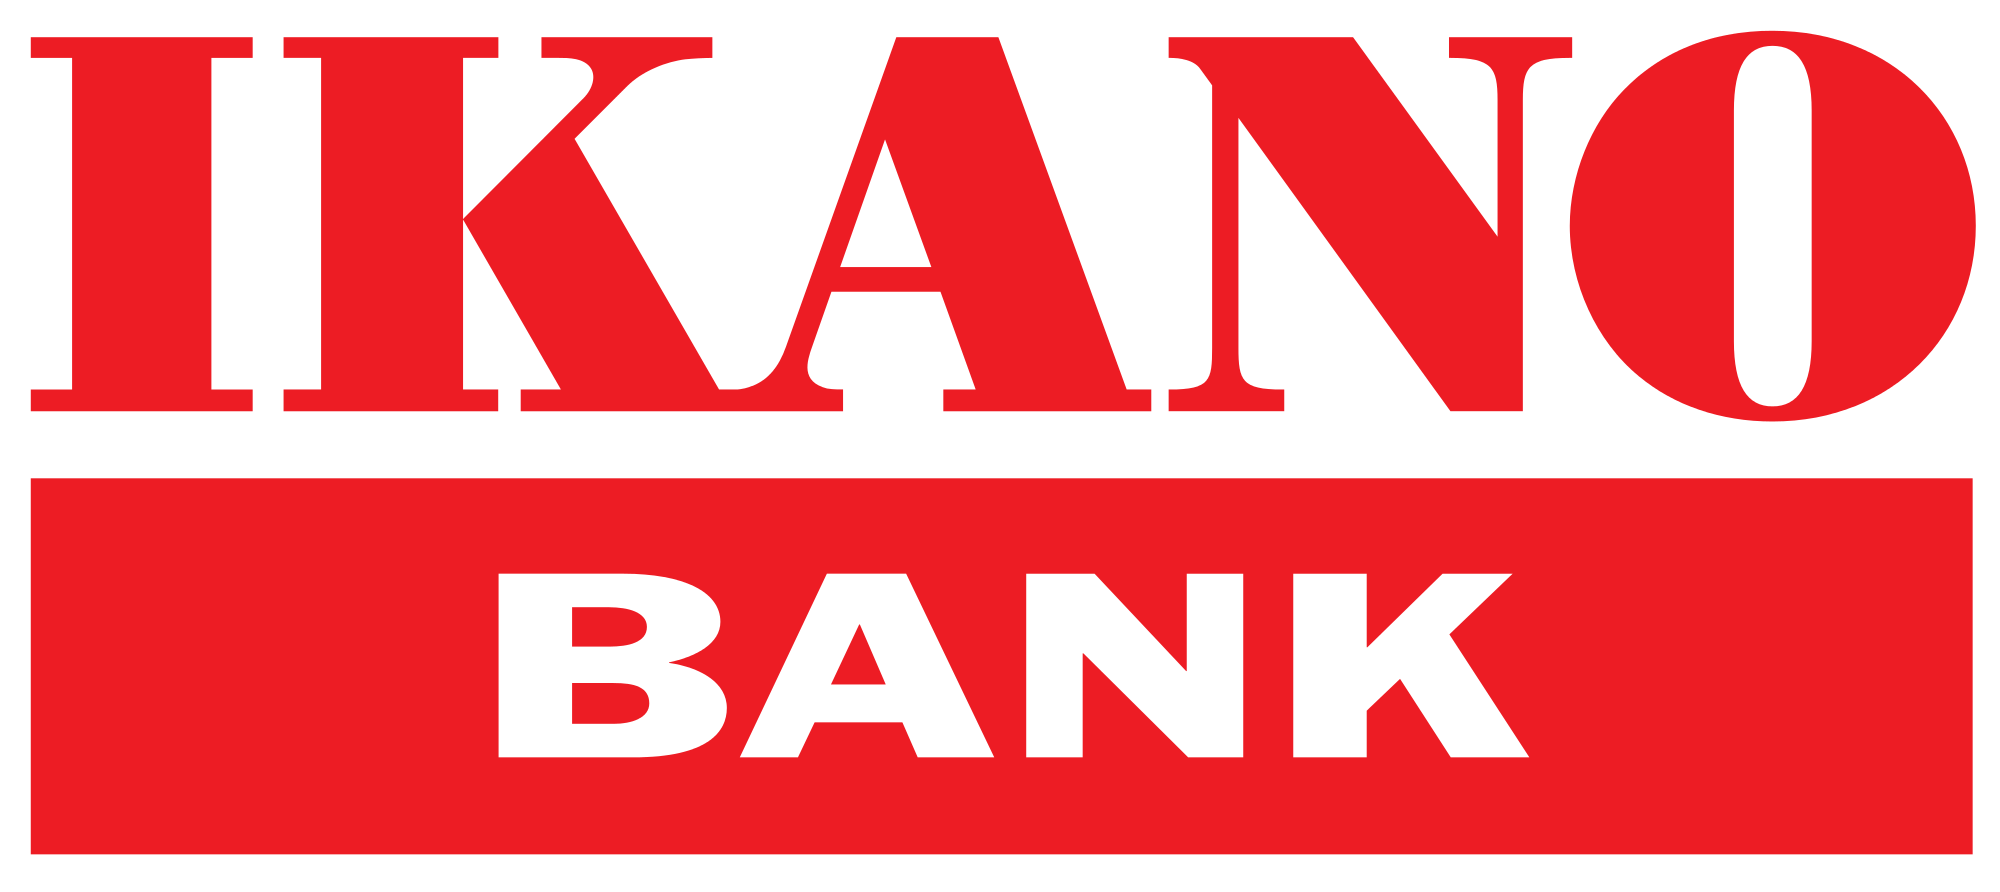 Ikano Bank-logo